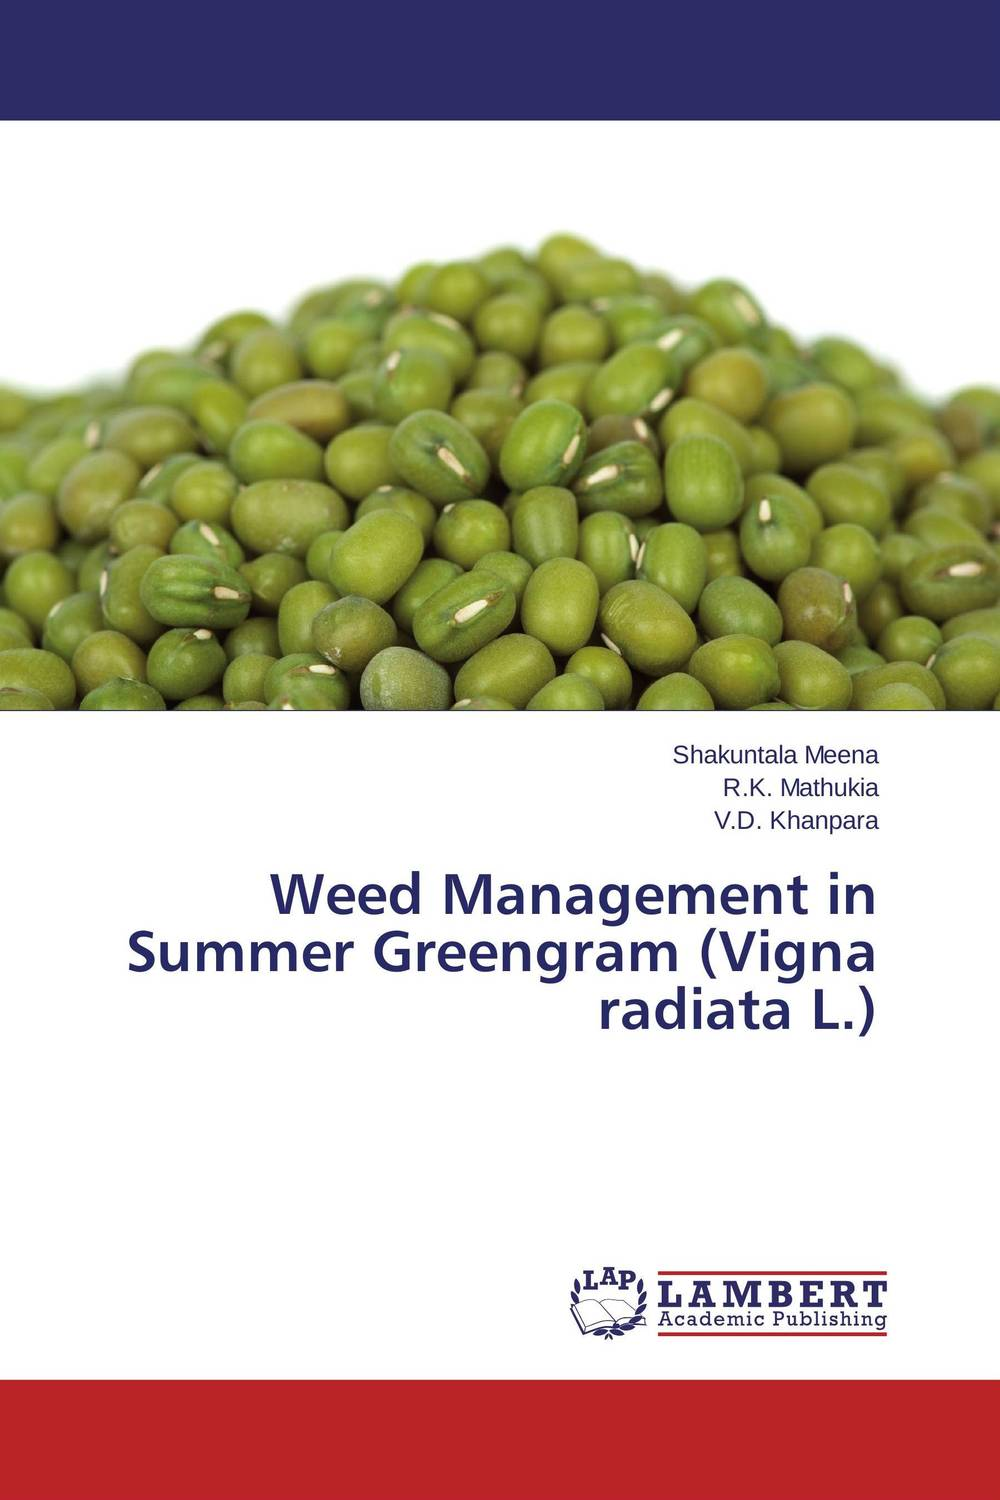 Weed Management in Summer Greengram (Vigna radiata L.)